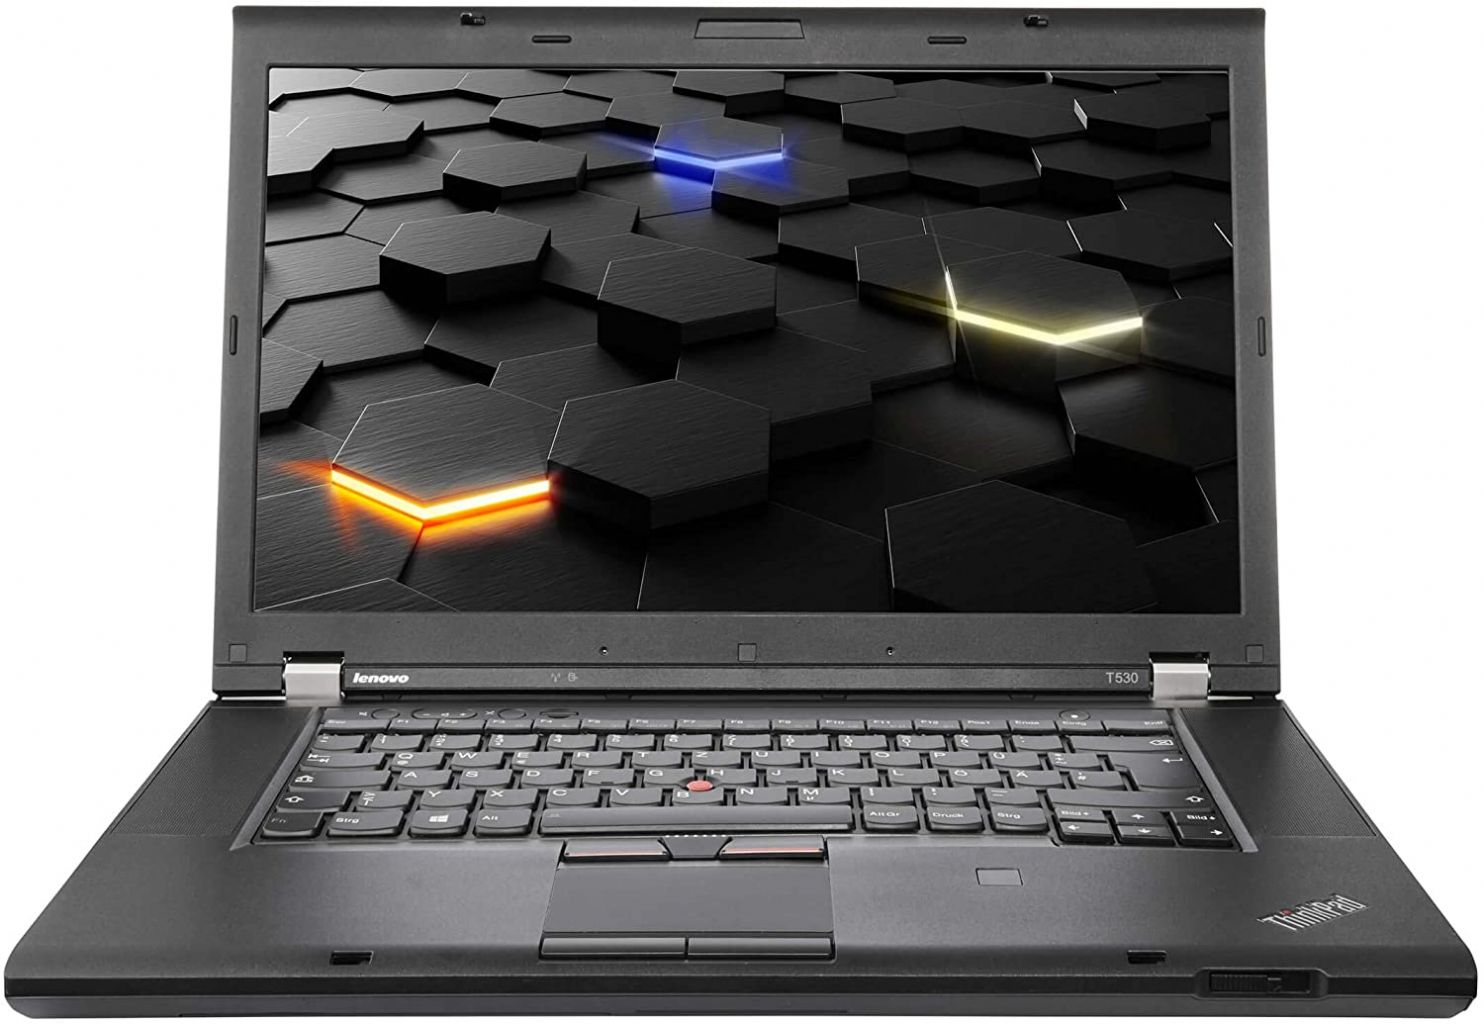 Lenovo ThinkPad T530 15,6' - I5 3320M 2,6Mhz (Up to 3,3ghz) -  4GB -  240SSD - W10Pro (Upgrade) - Refurbished Gar@12M GRADO A-